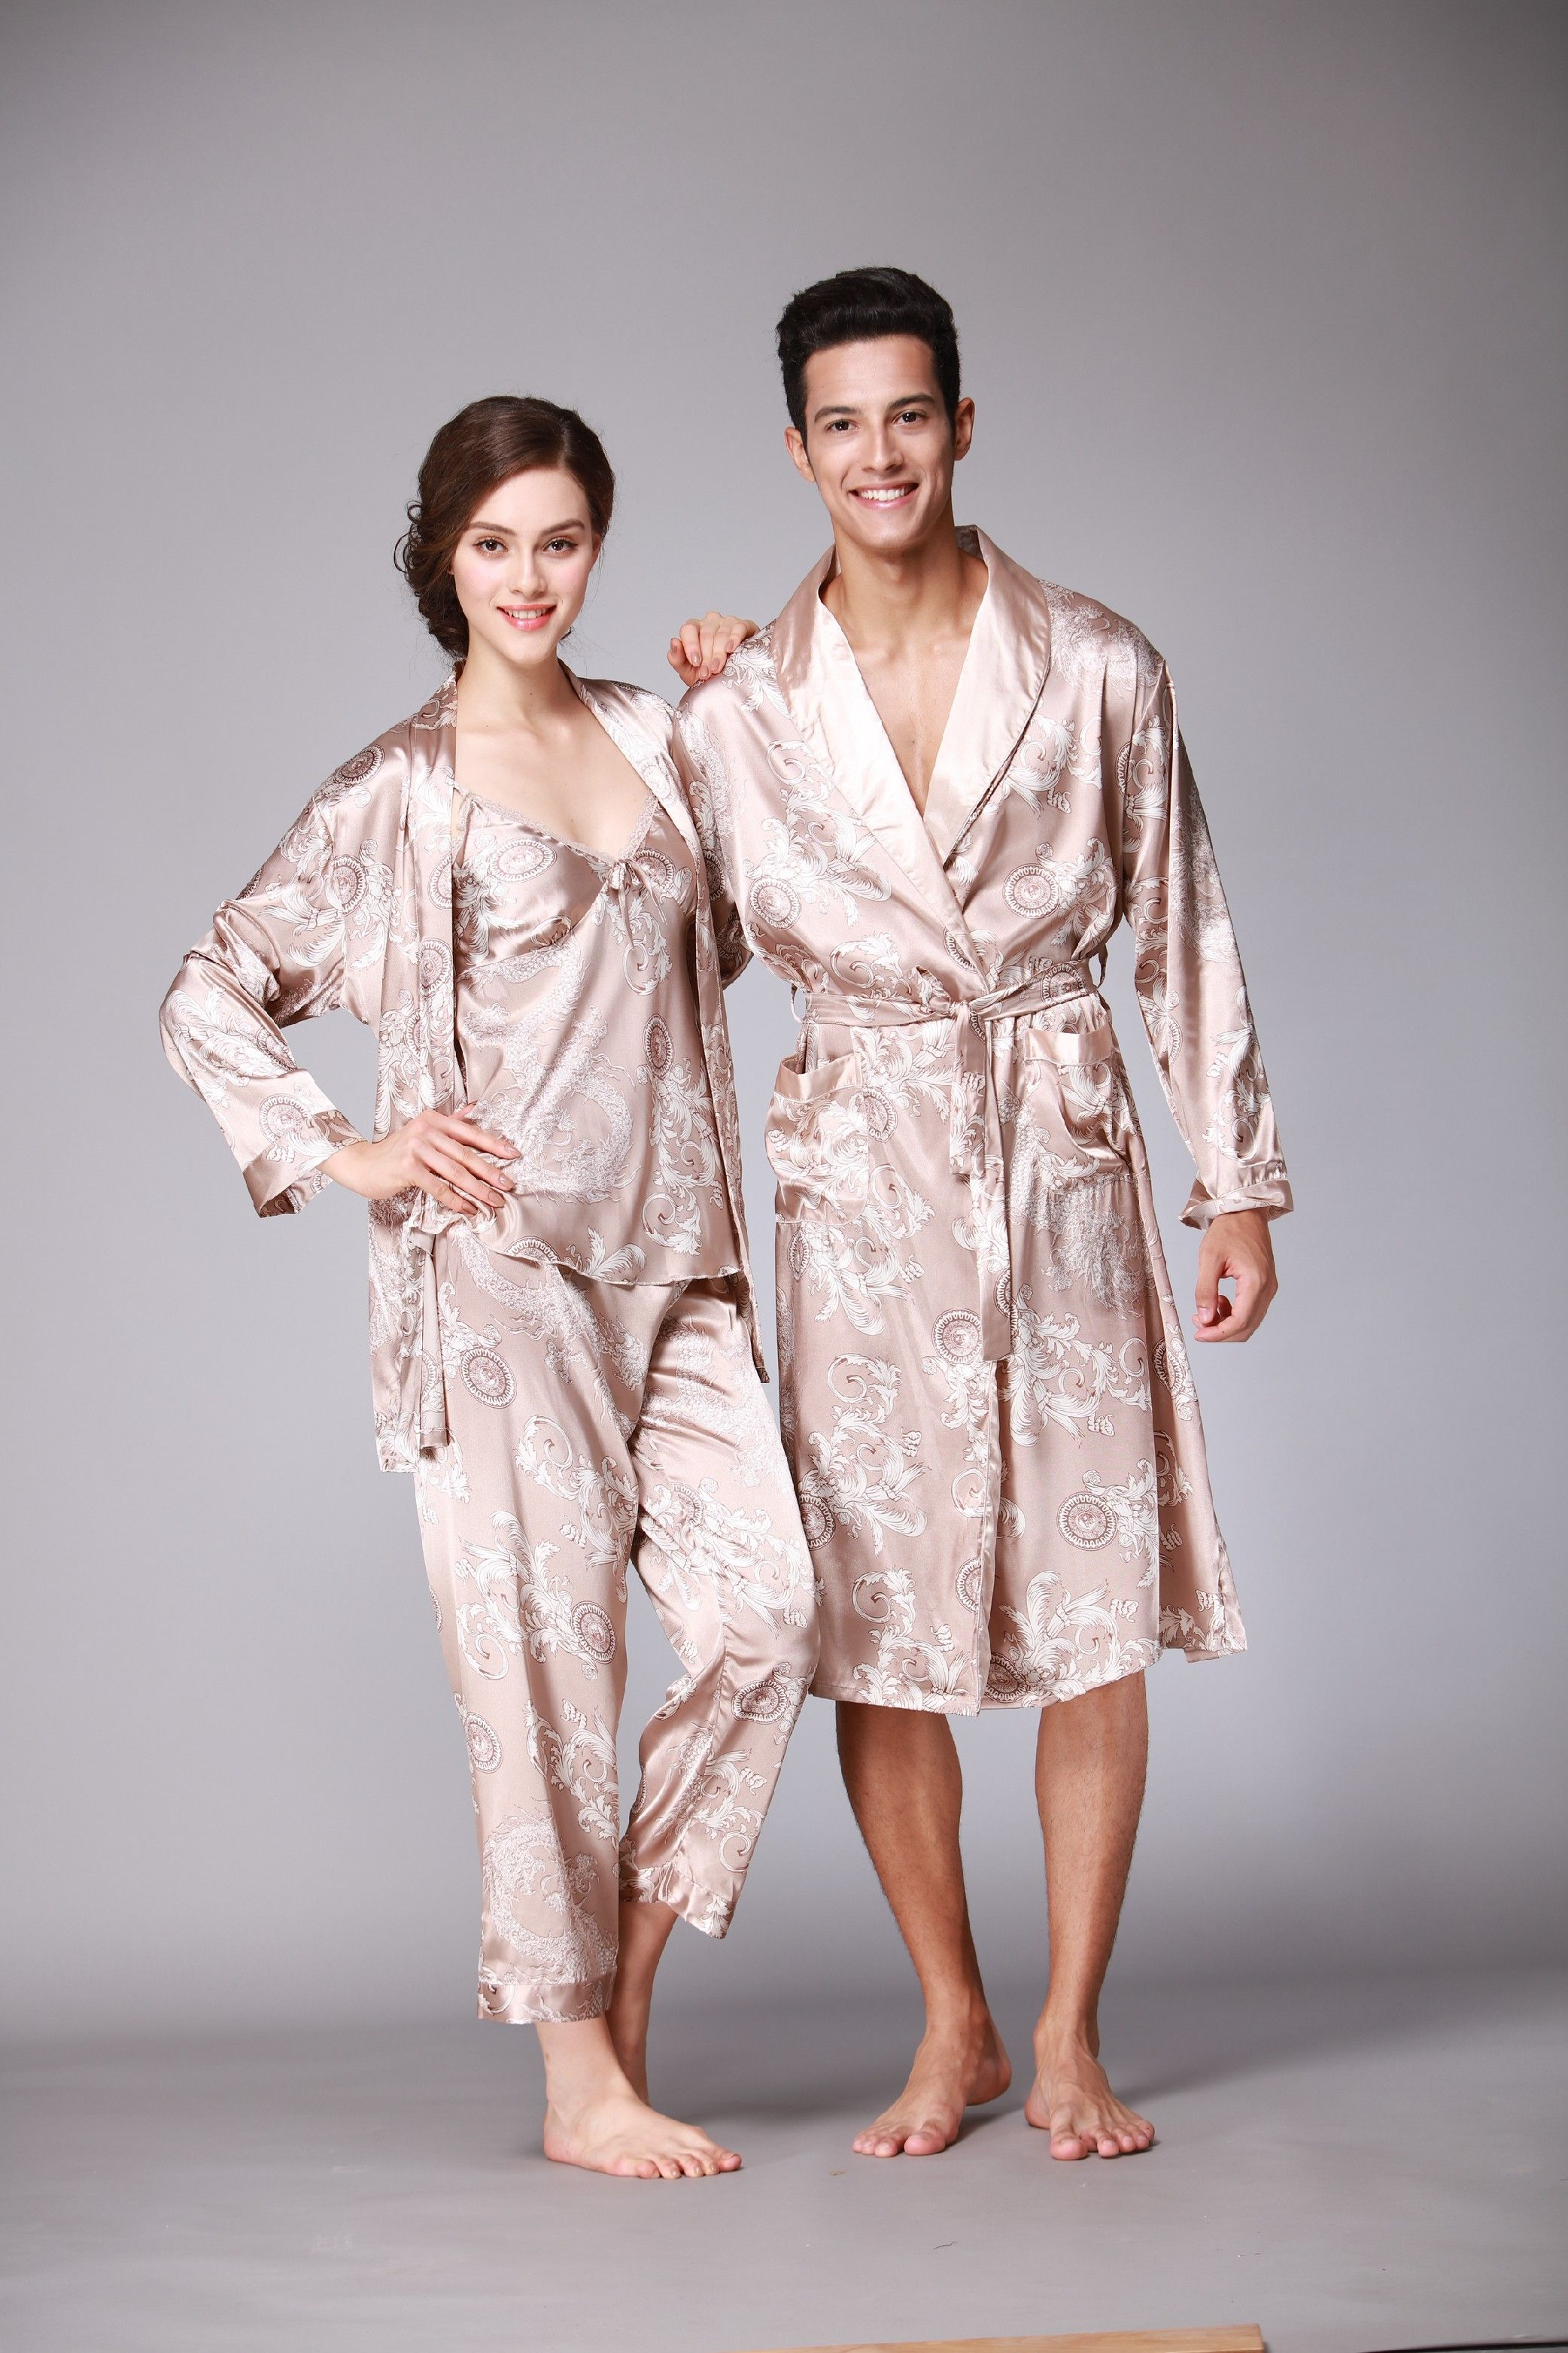 411d840c5b  Lovers  NightGowns  Couples  Sleepwear  Sexy  Nightwear  Charming   Bedskirt  DeepVNeck  Pajamas  Womens  SleepDress  Mens  Robe